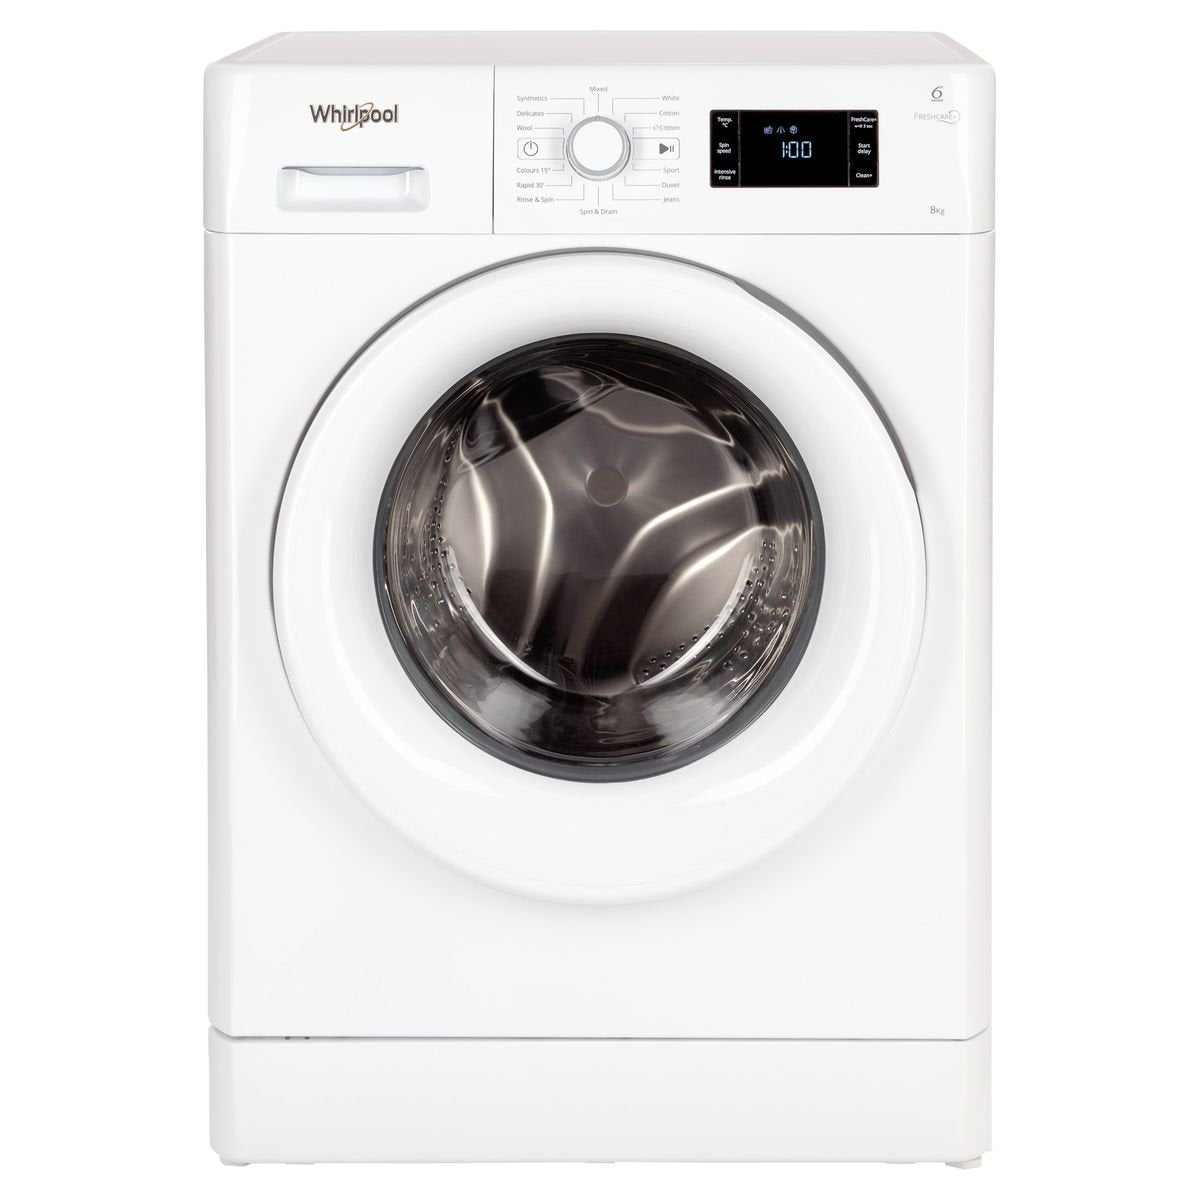 Whirlpool FDLR80210 8kg Front Load Washing Machine